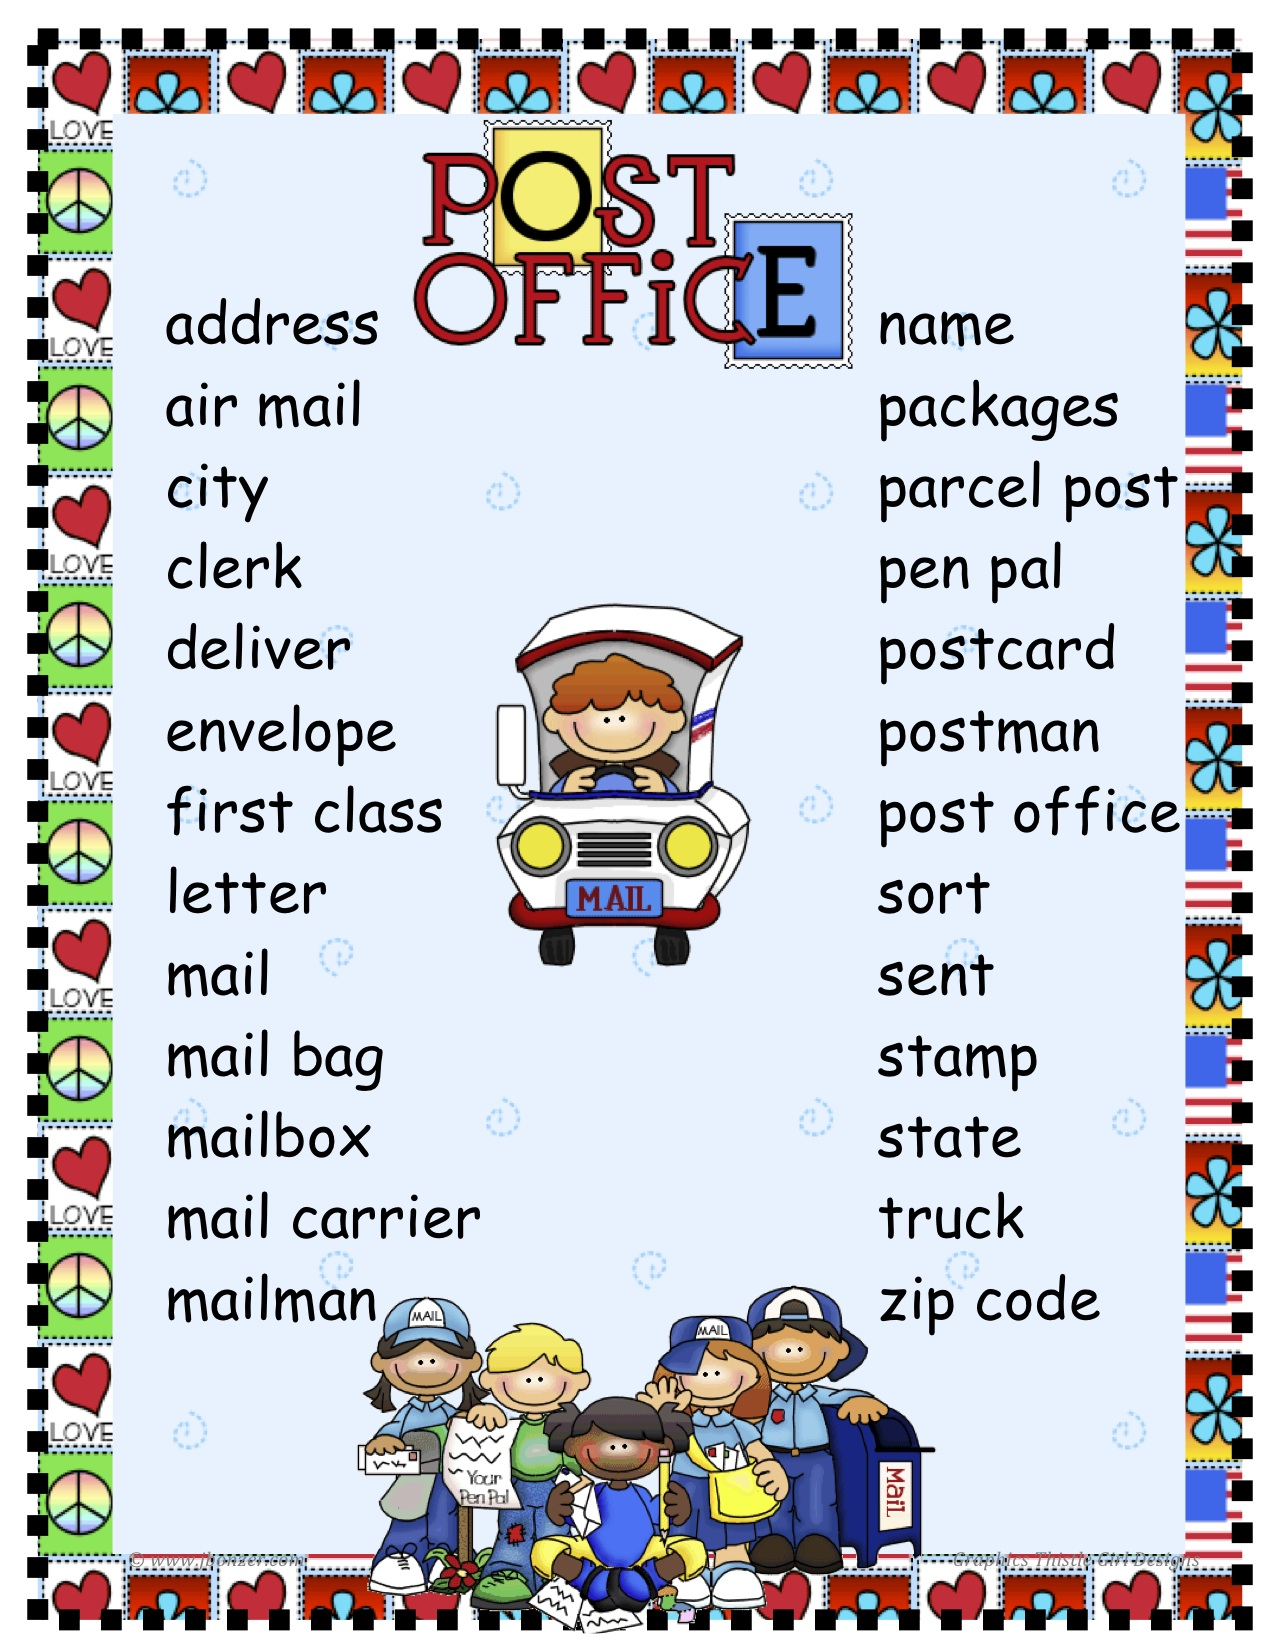 Free post office resources for schools